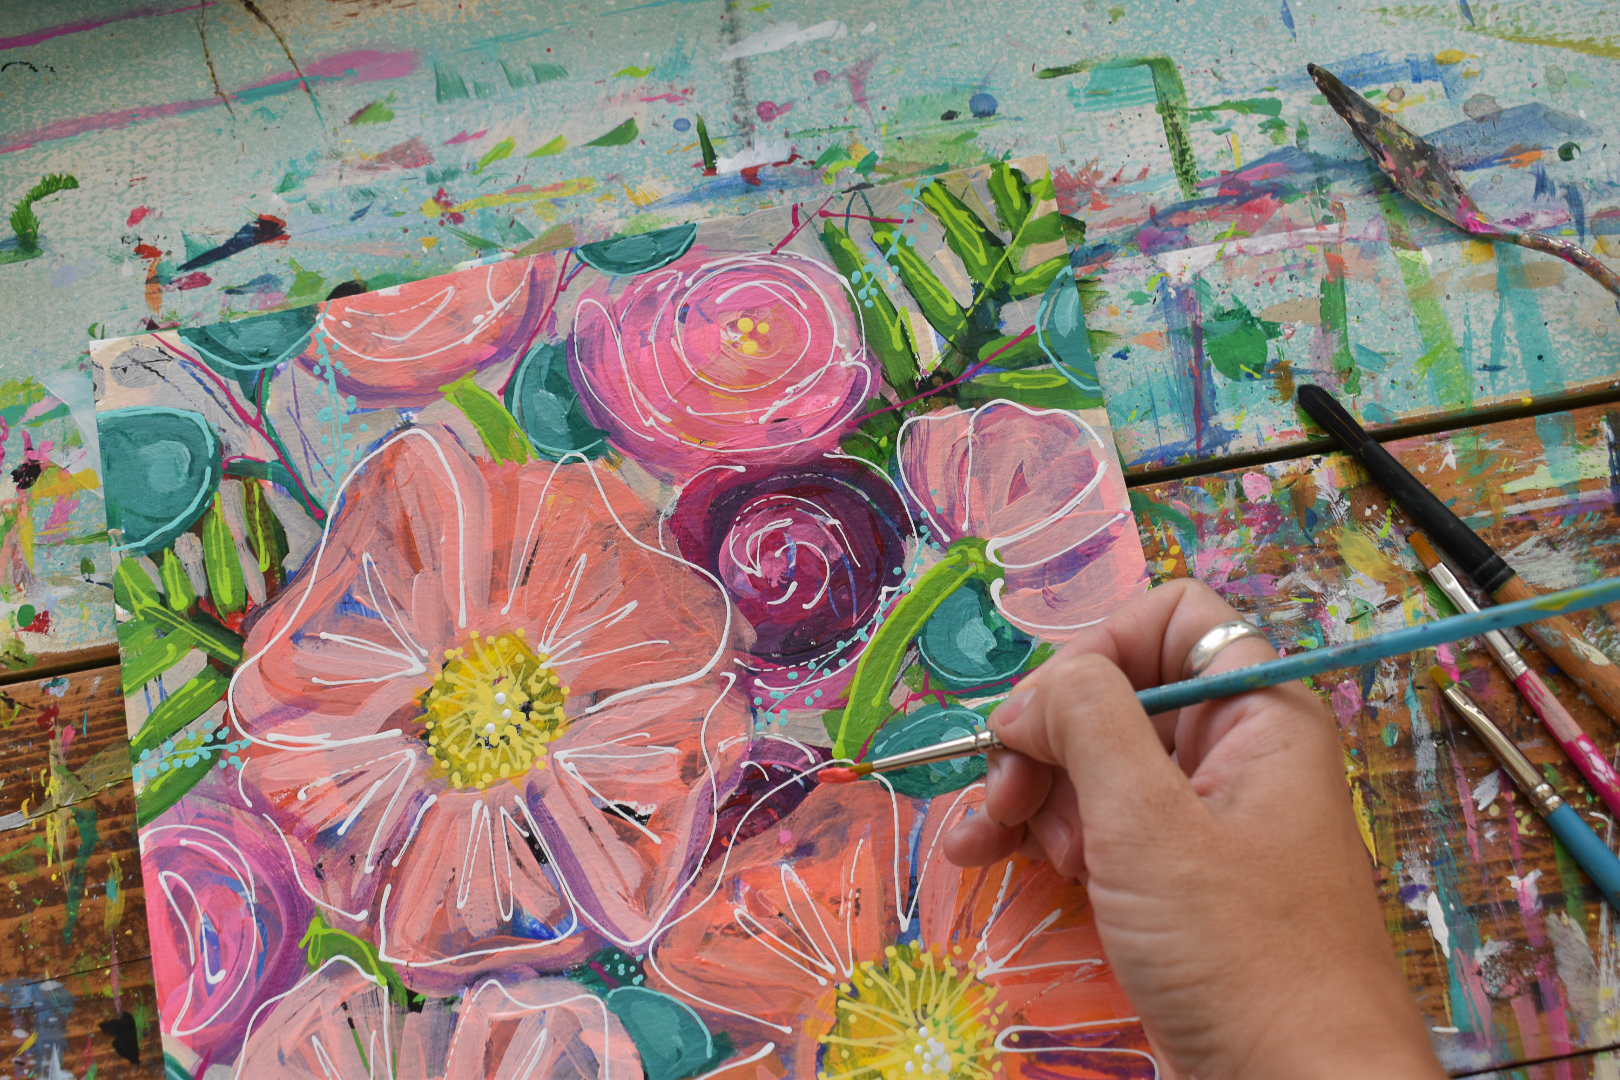 bohopainting_poppies_daisyfaithart_abstract5.jpg